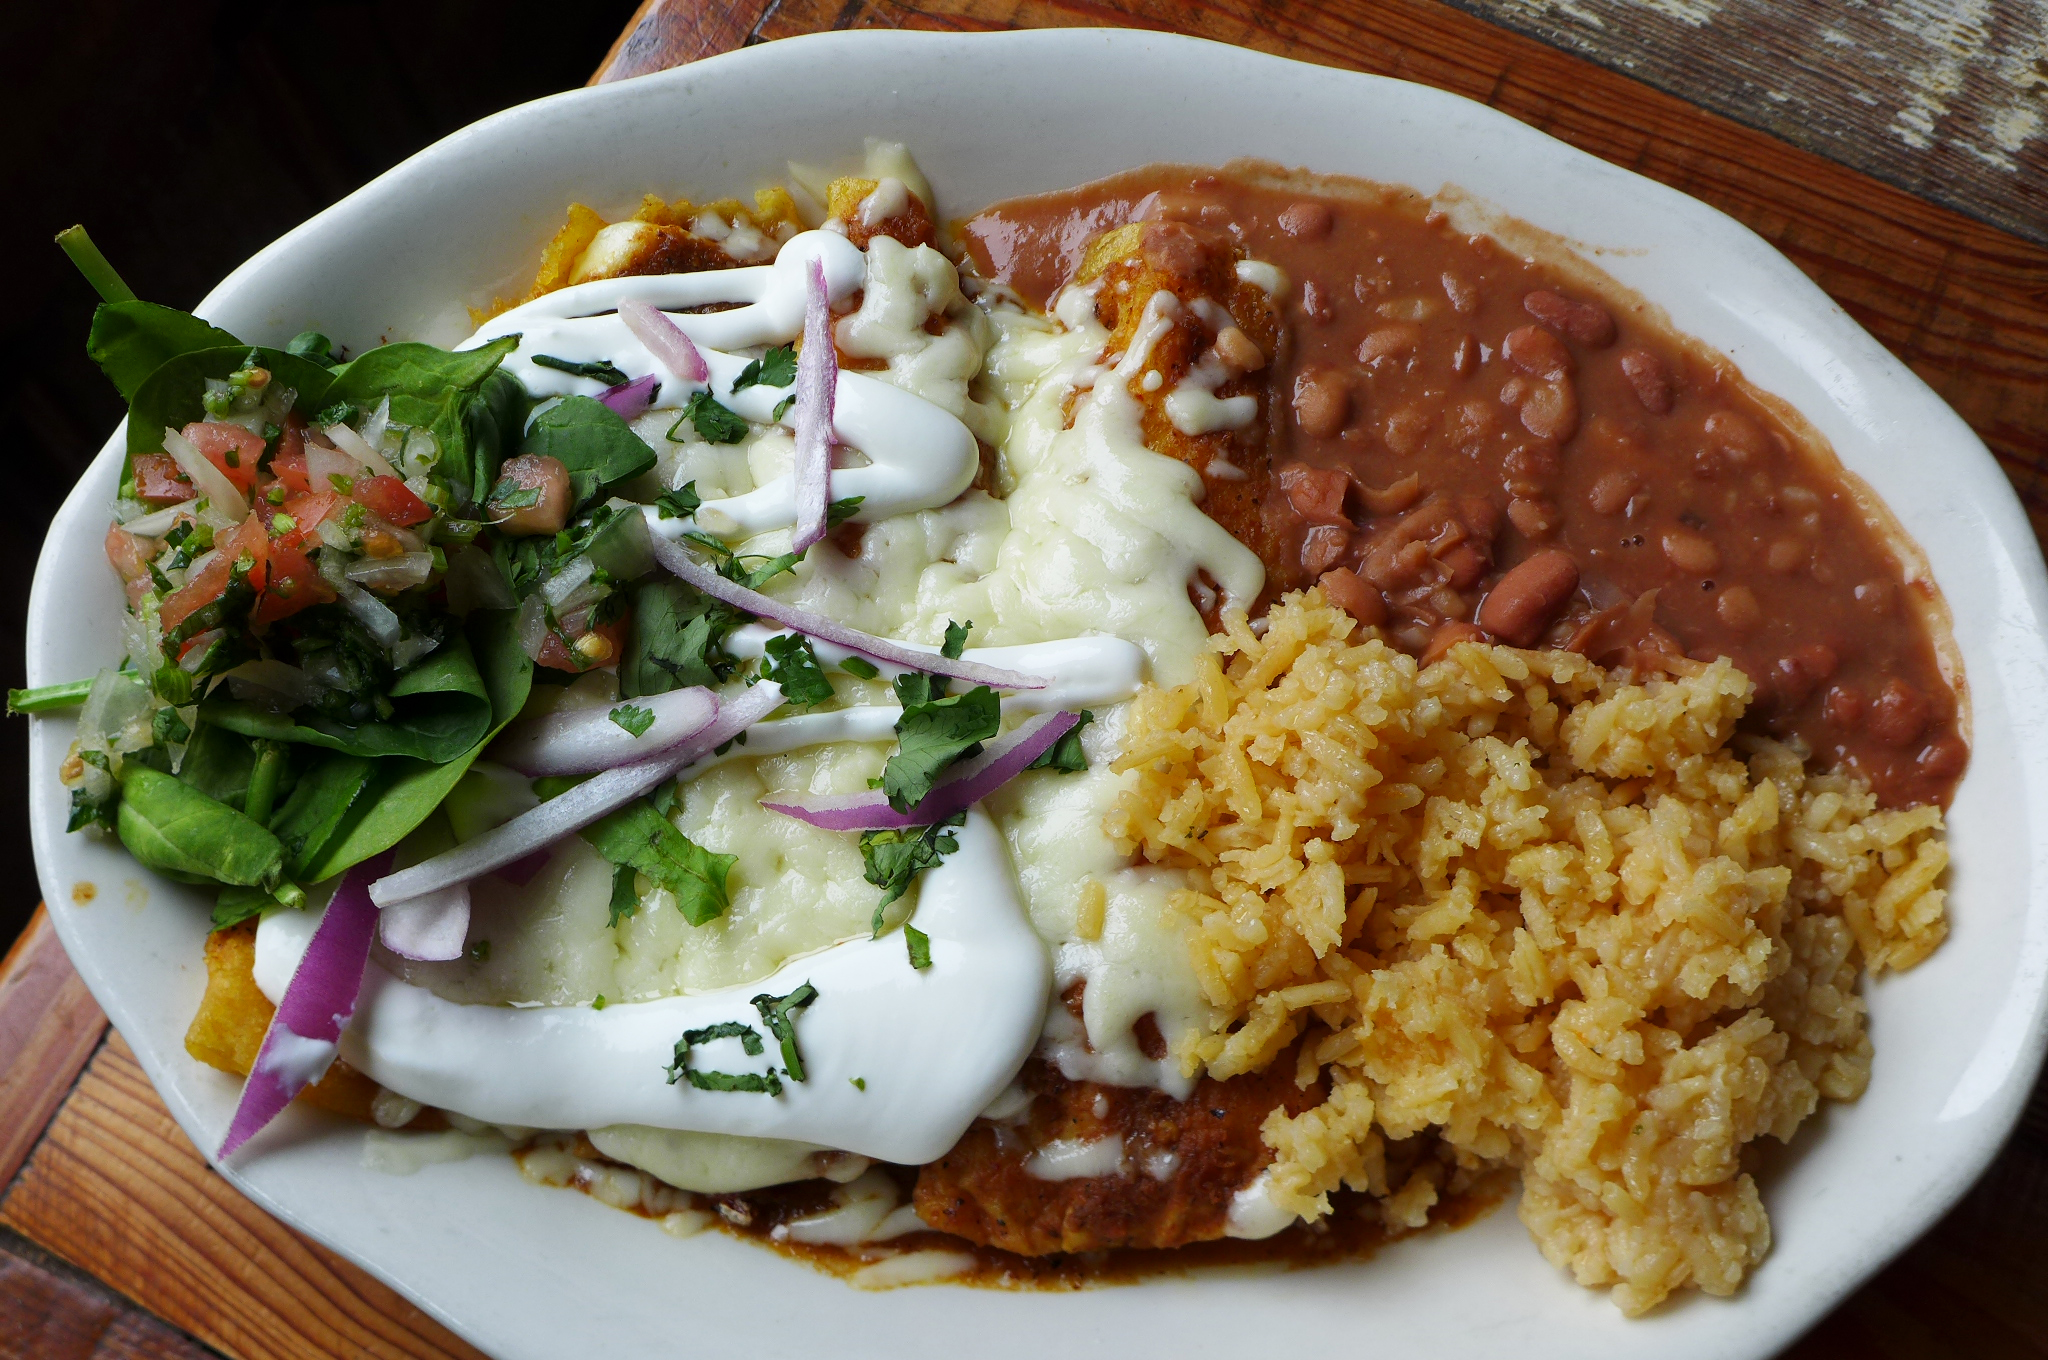 Enchiladas smothered in cheese and sided with beans and rice.